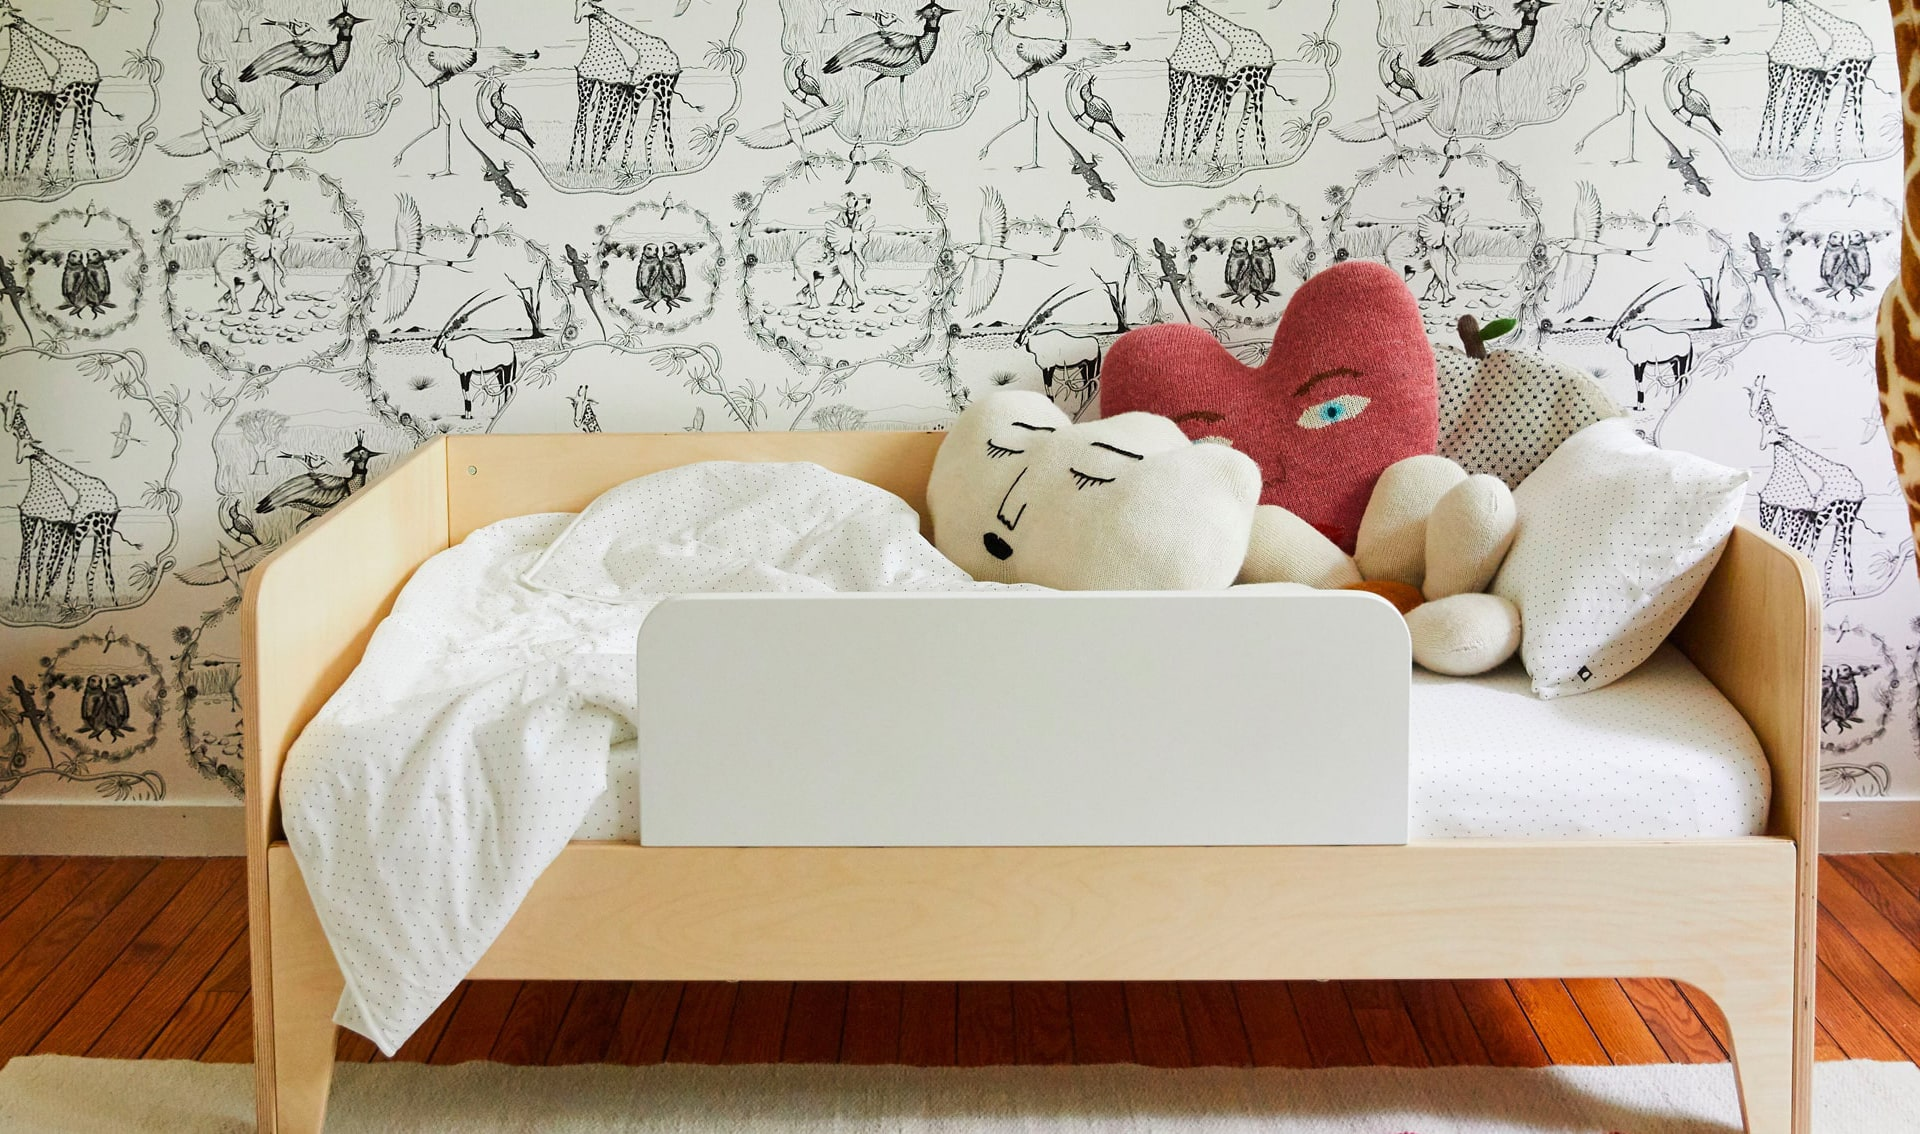 Cute Kids' Bedroom with Wallpaper and Giraffe Stuffed Animal